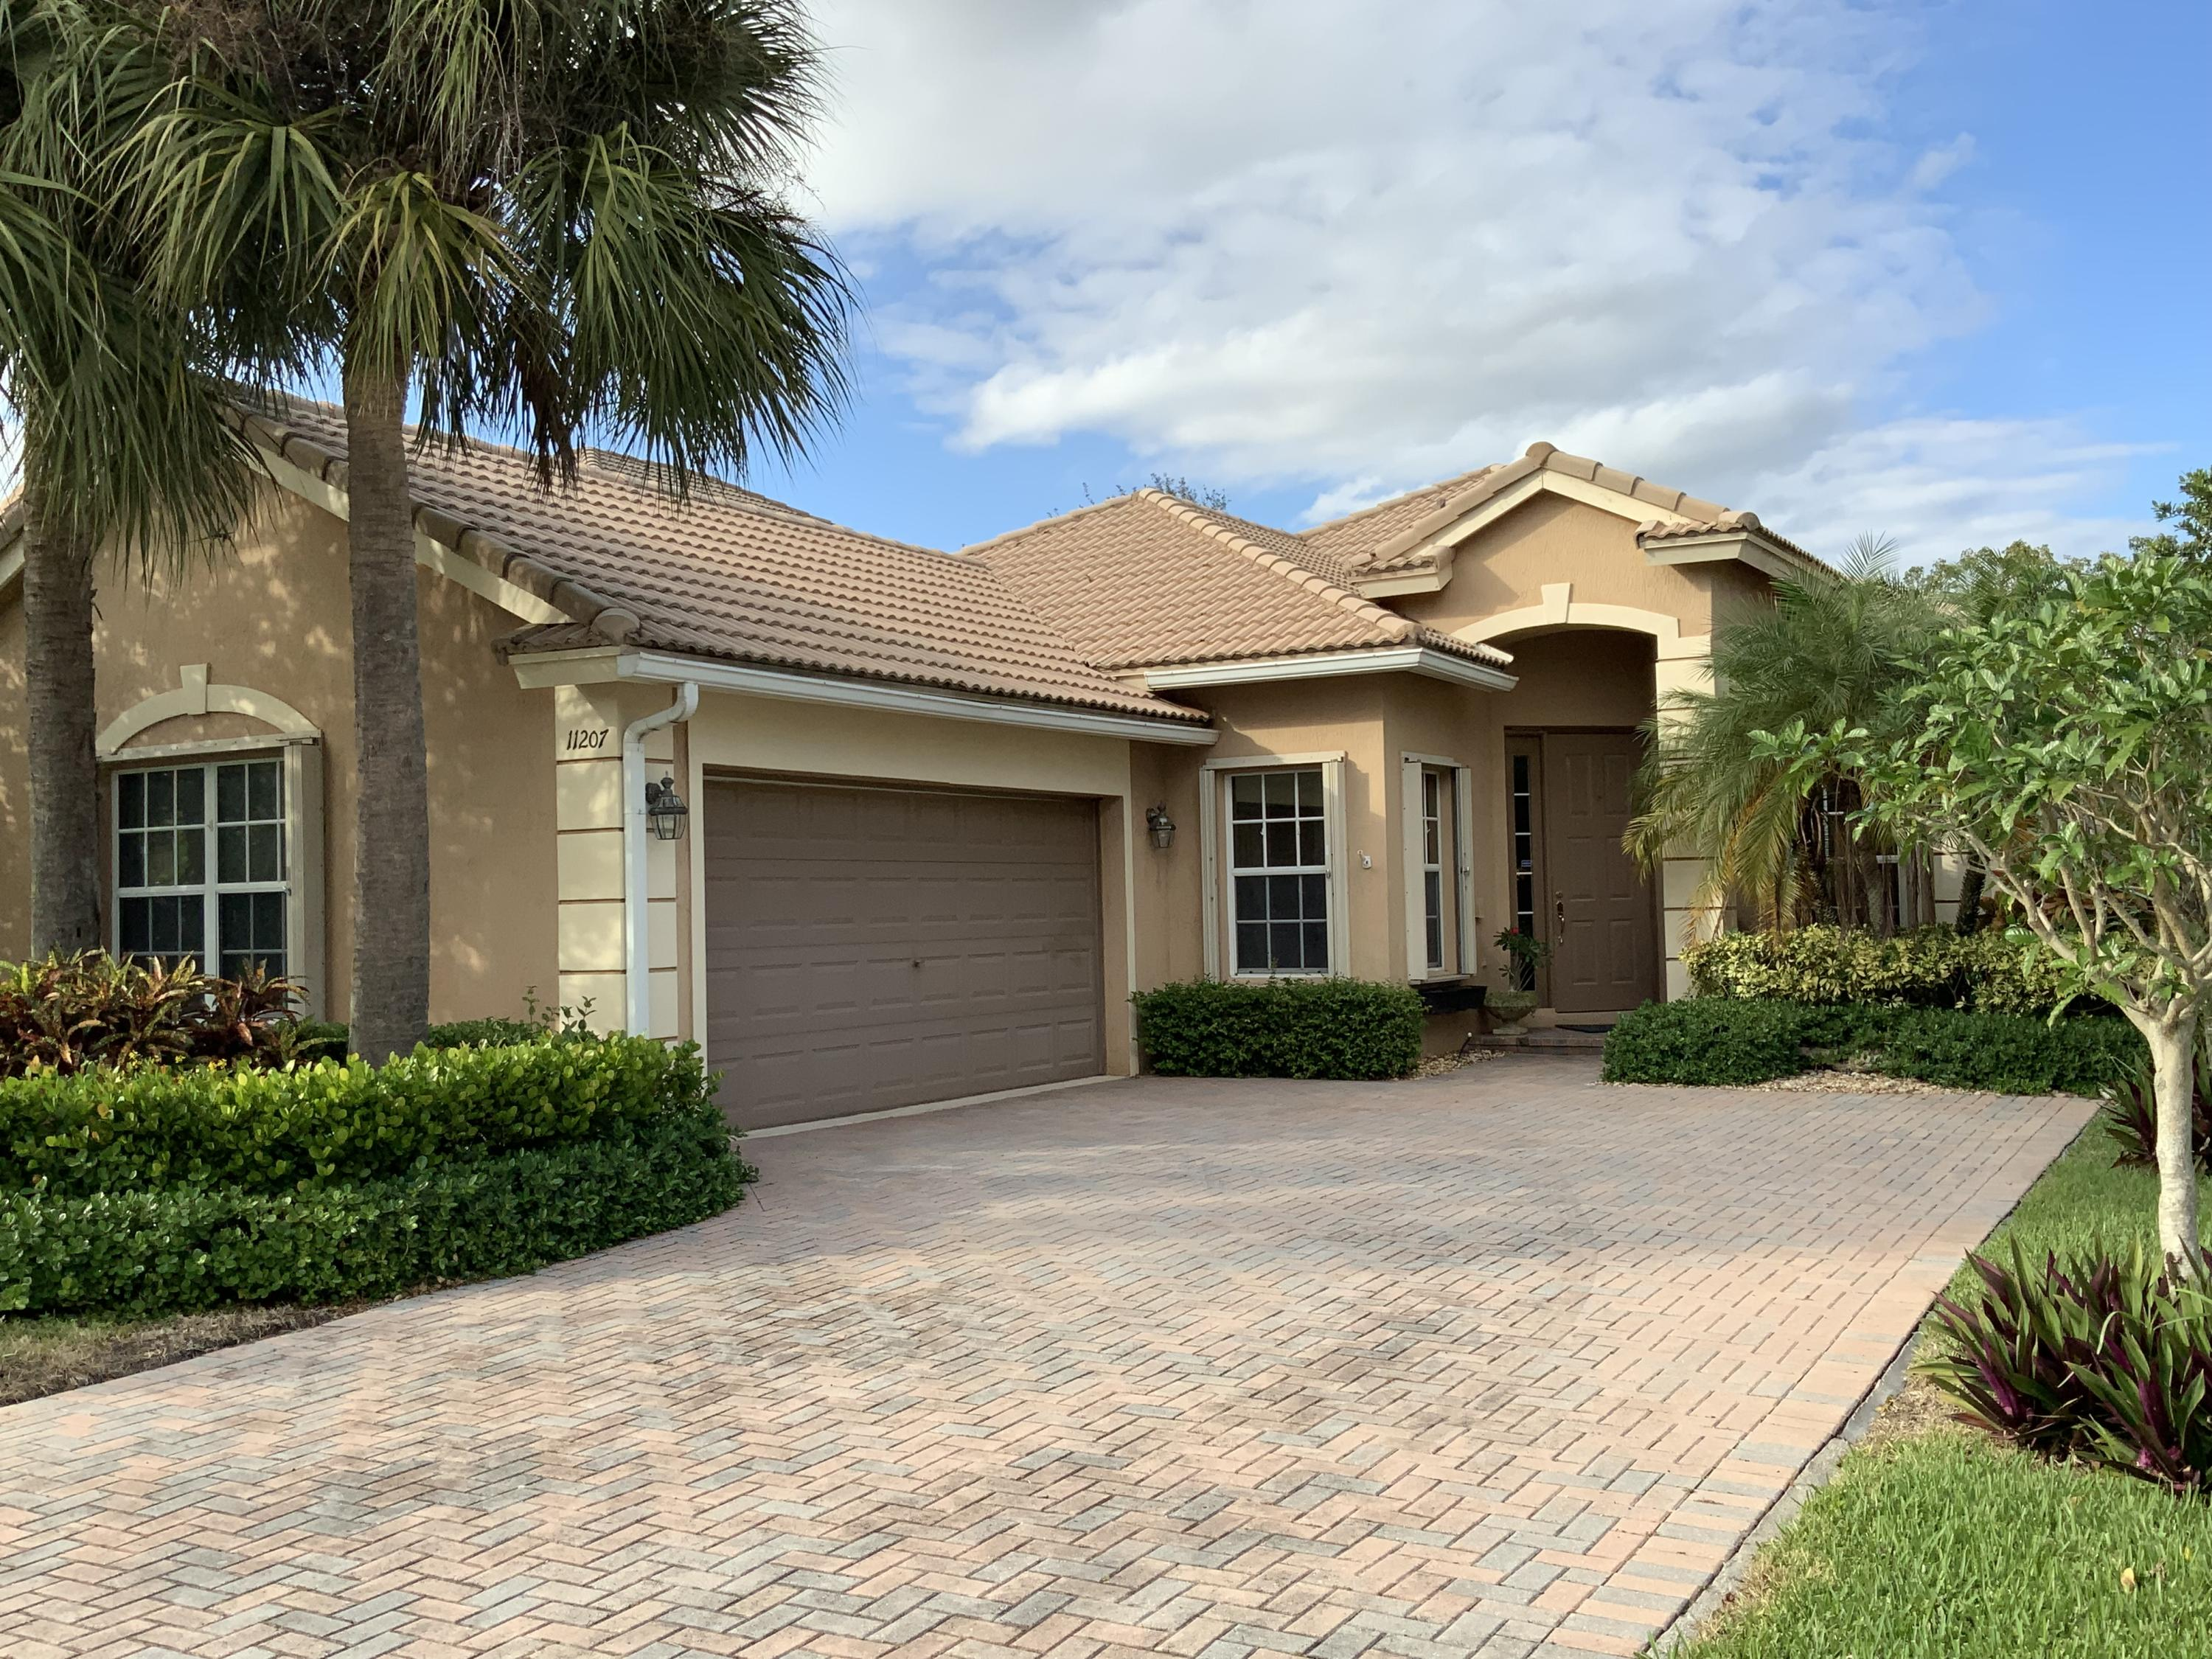 11207 NW 65th Court